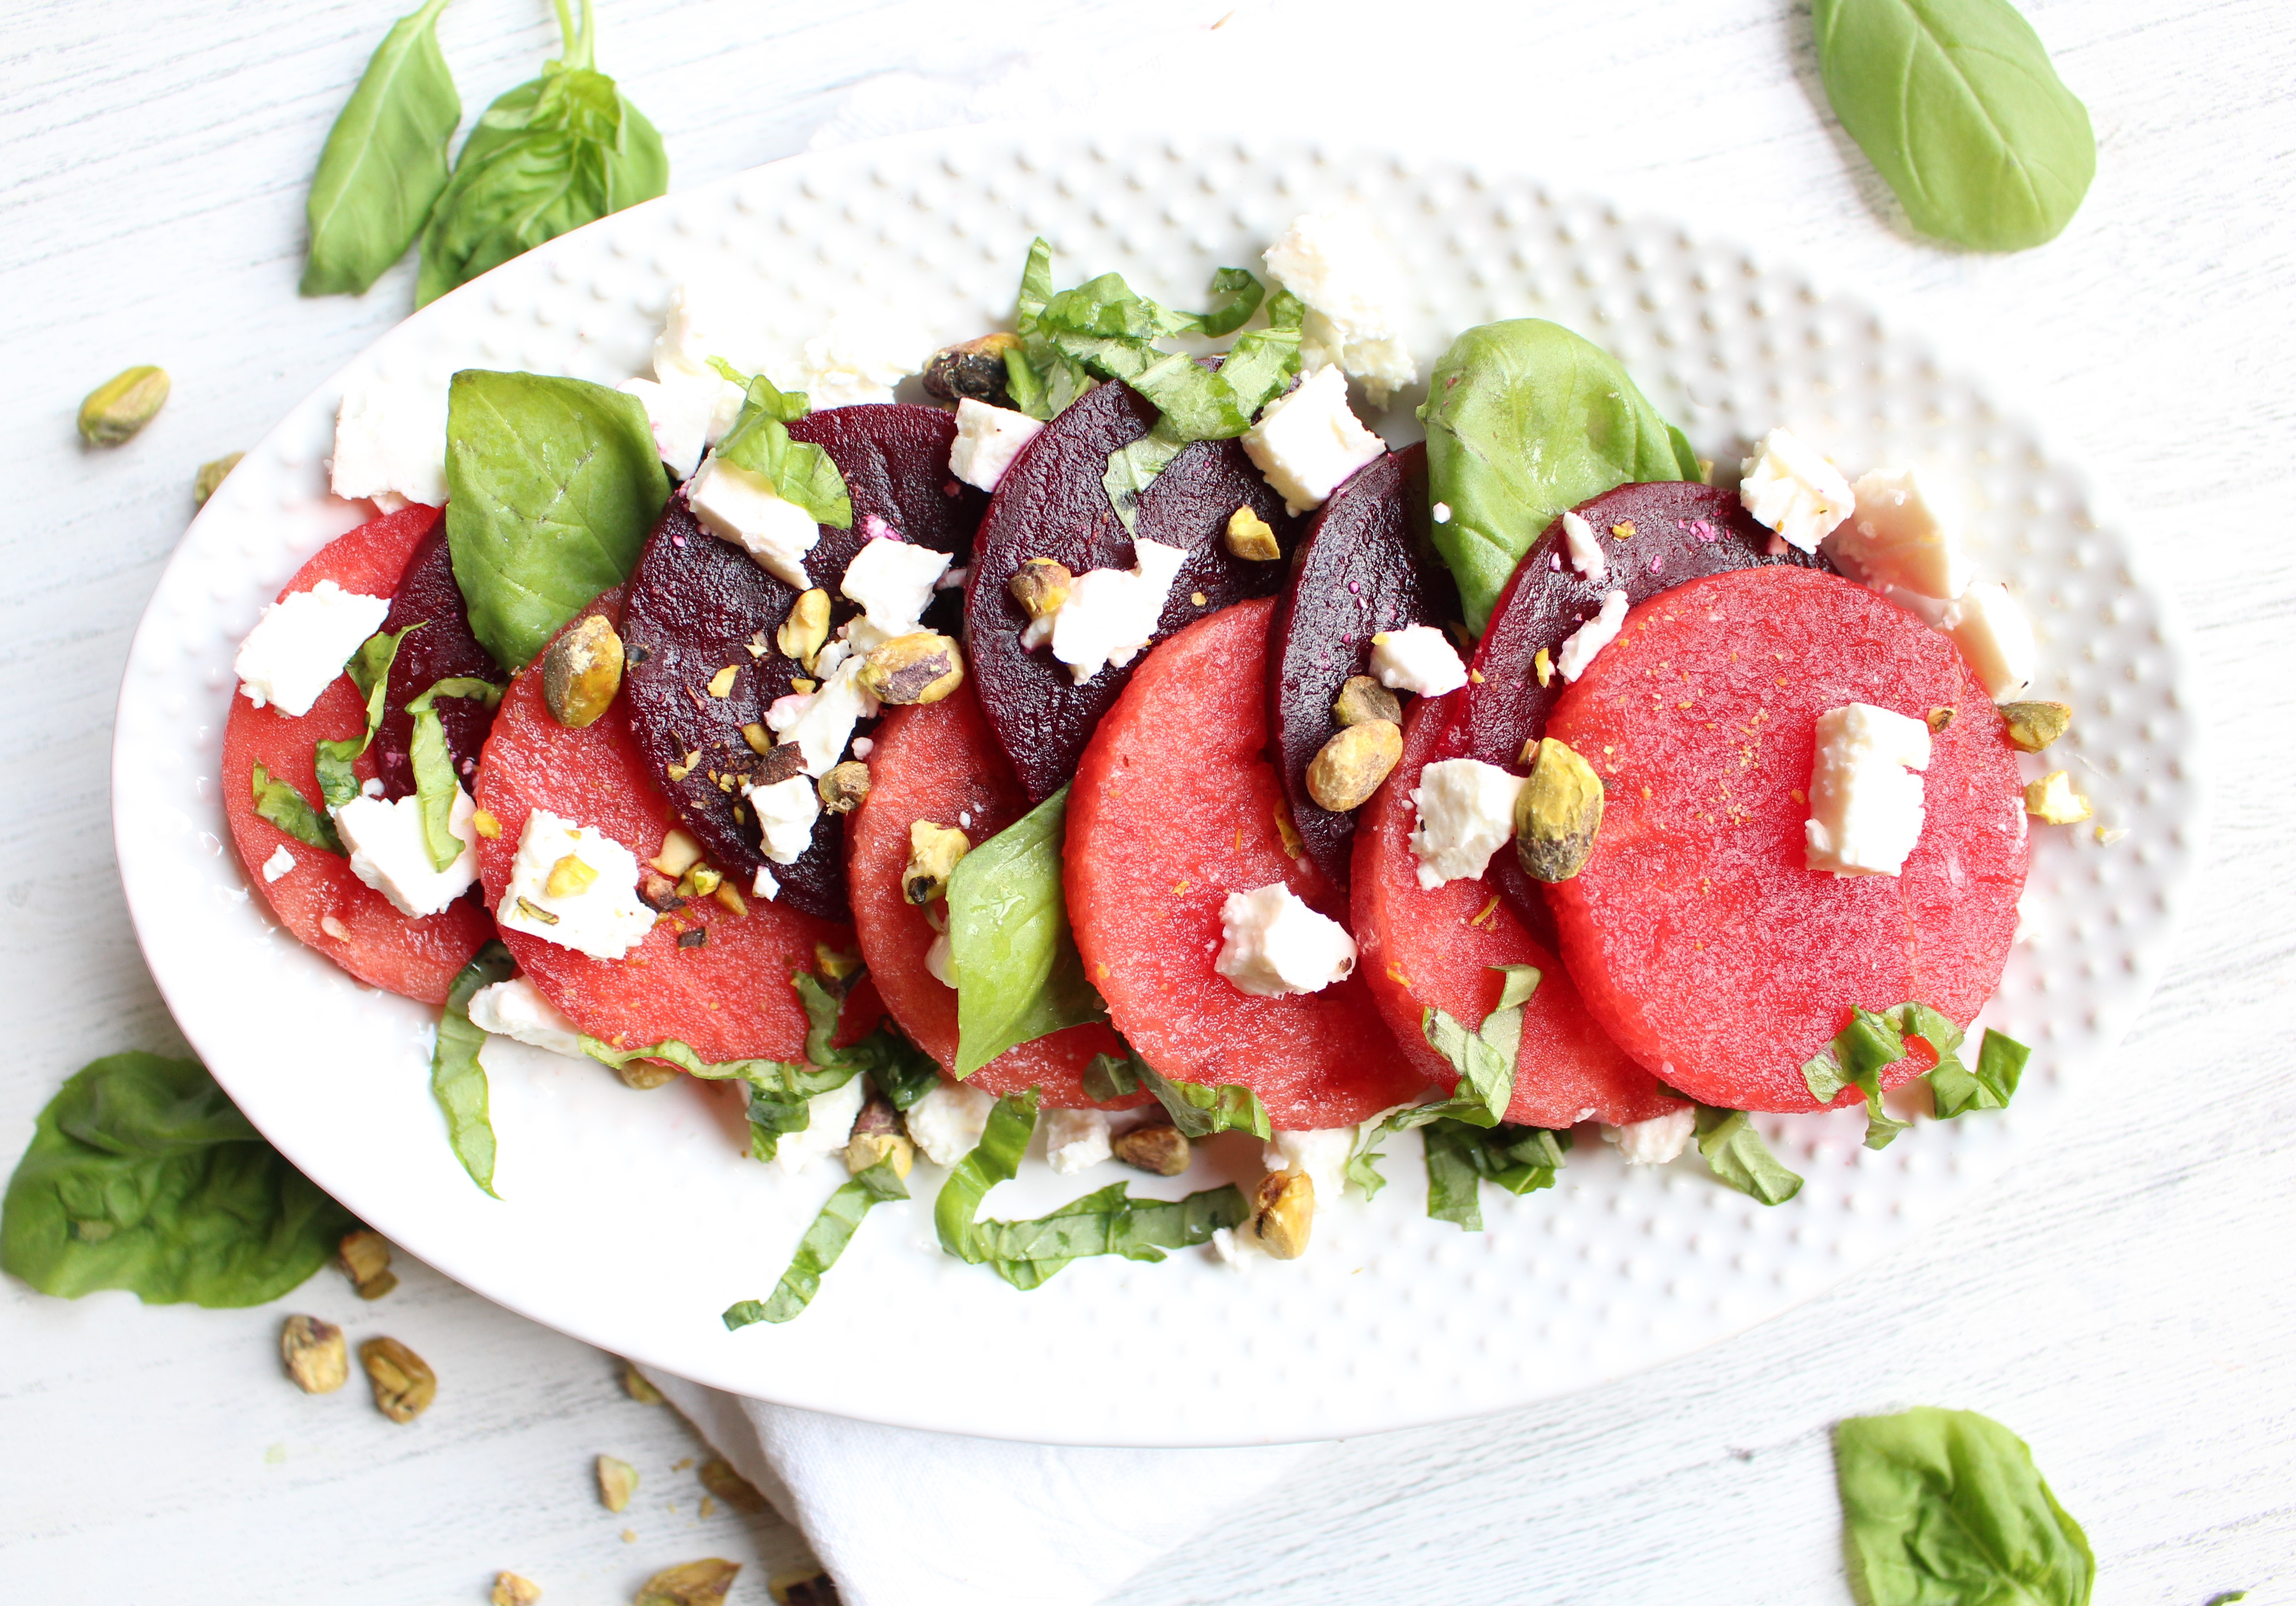 Roasted Beet and Watermelon Salad with feta, basil, and pistachios - the perfect refreshing summer salad!